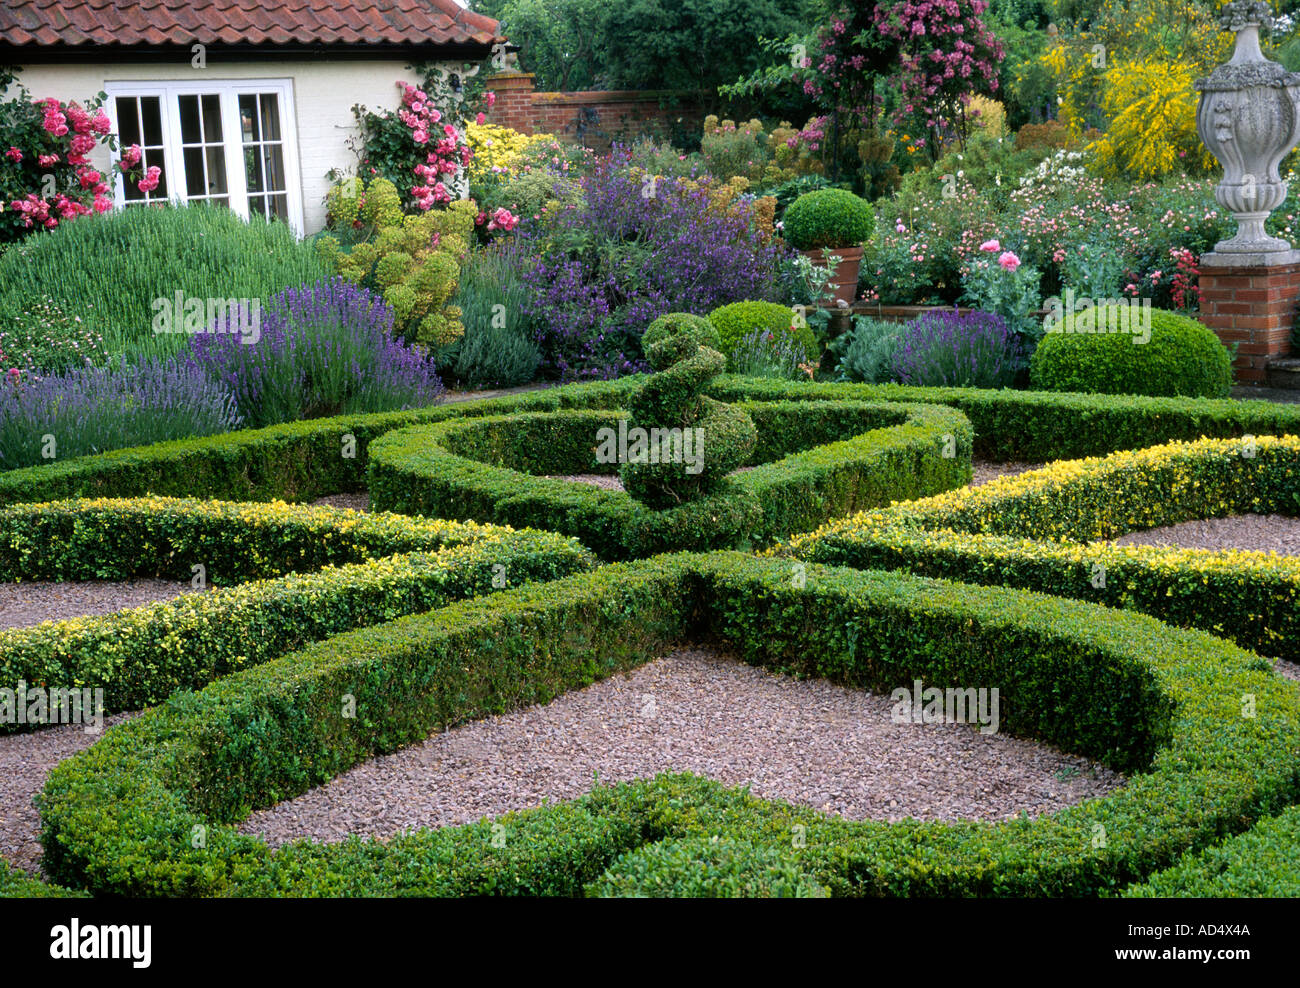 Garden Design Norfolk Design Kettle Hill Box Hedges Norfolk England English Garden Design .